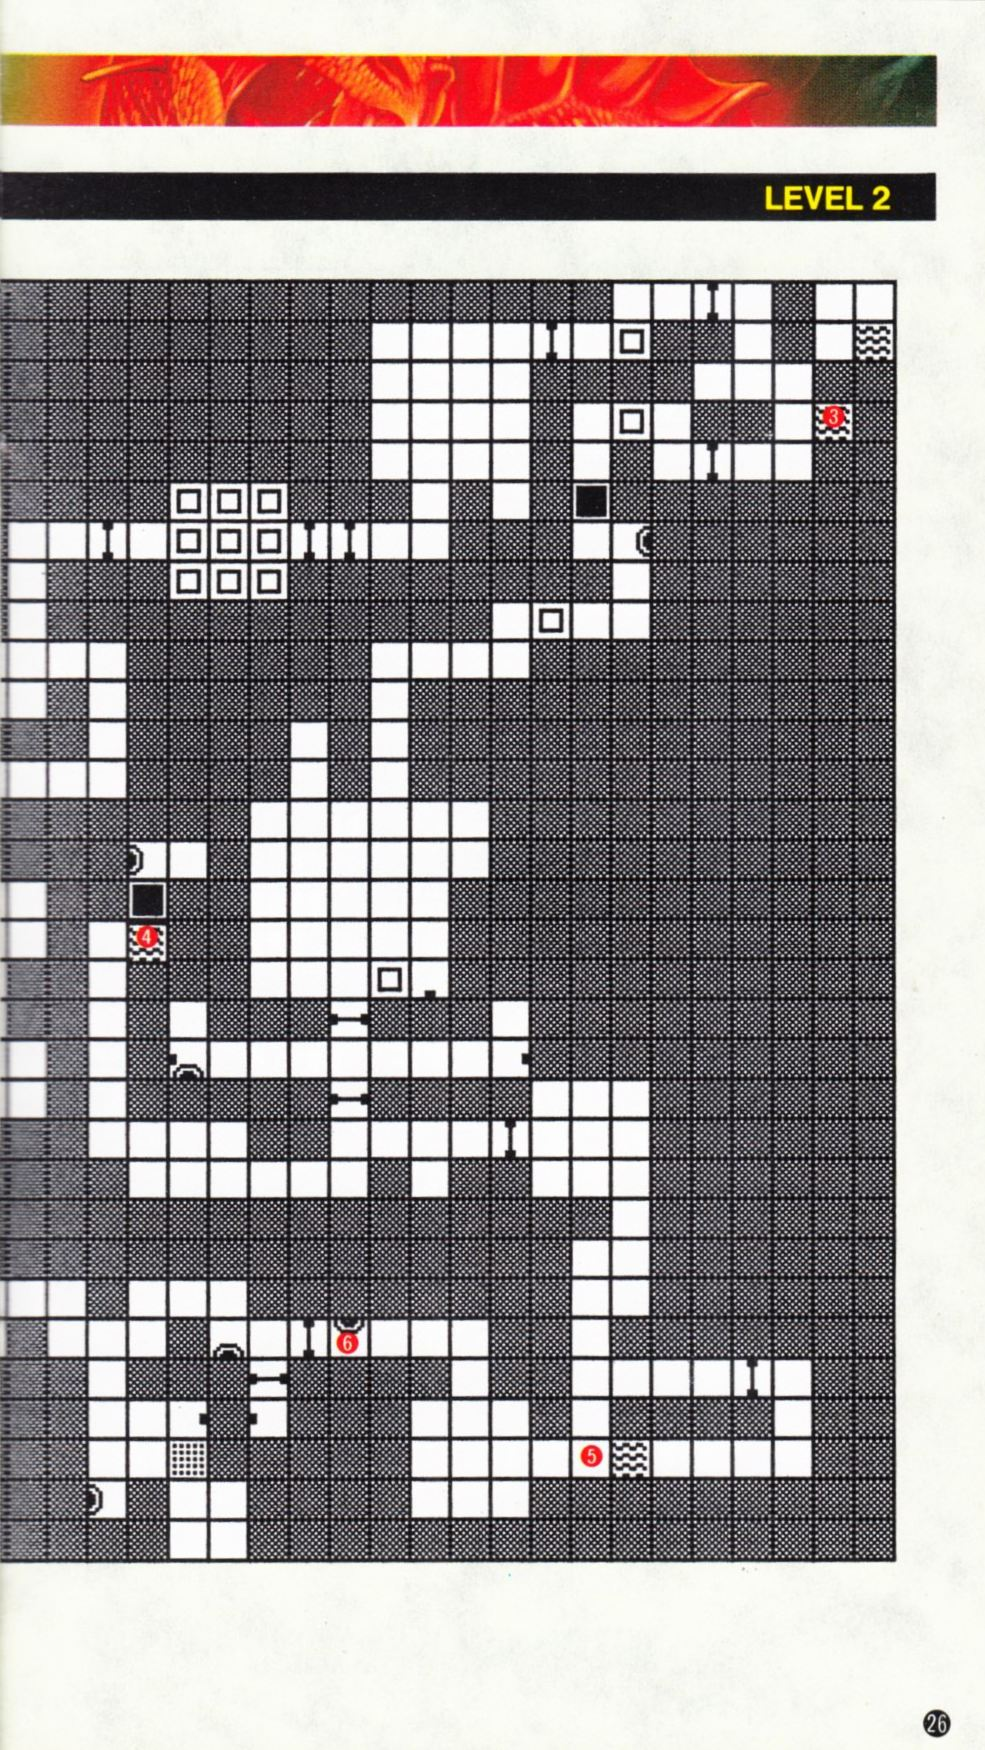 Game - Dungeon Master - JP - Super Famicom - Manual - Page 029 - Scan